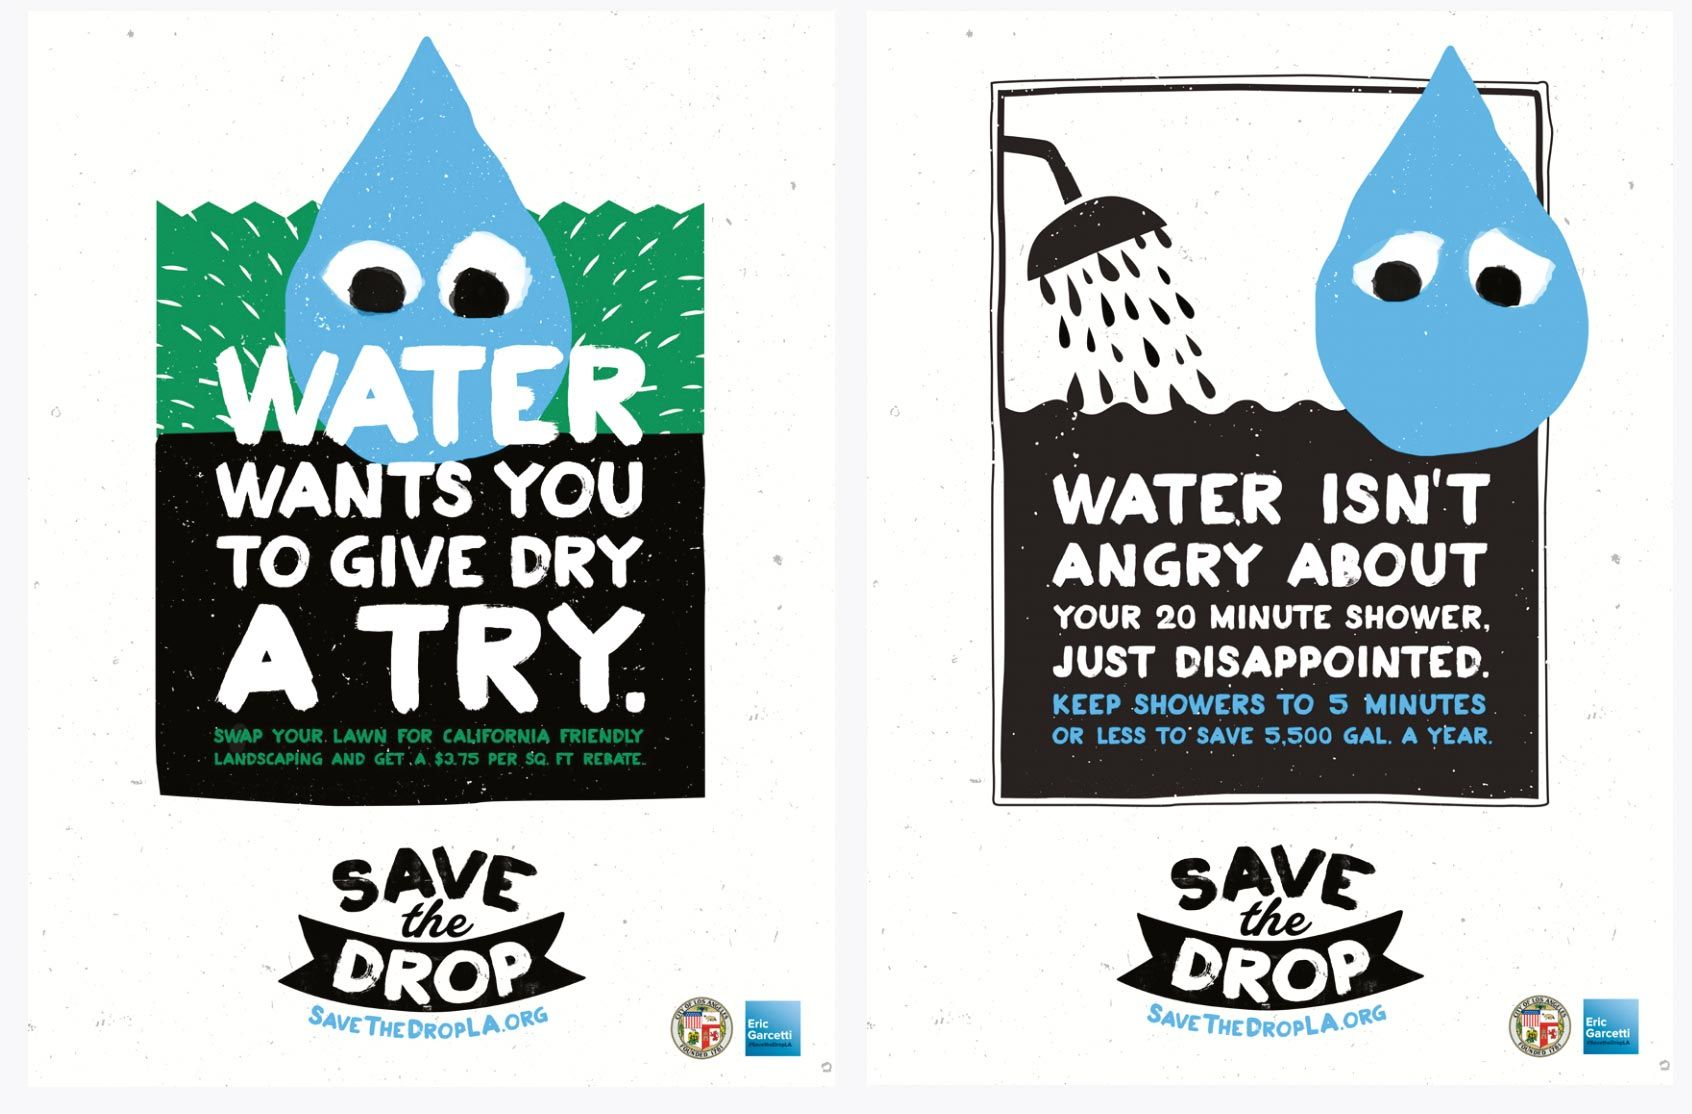 Campagne de sensibilisation « Save the drop », produite par la ville de Los Angeles, 2015